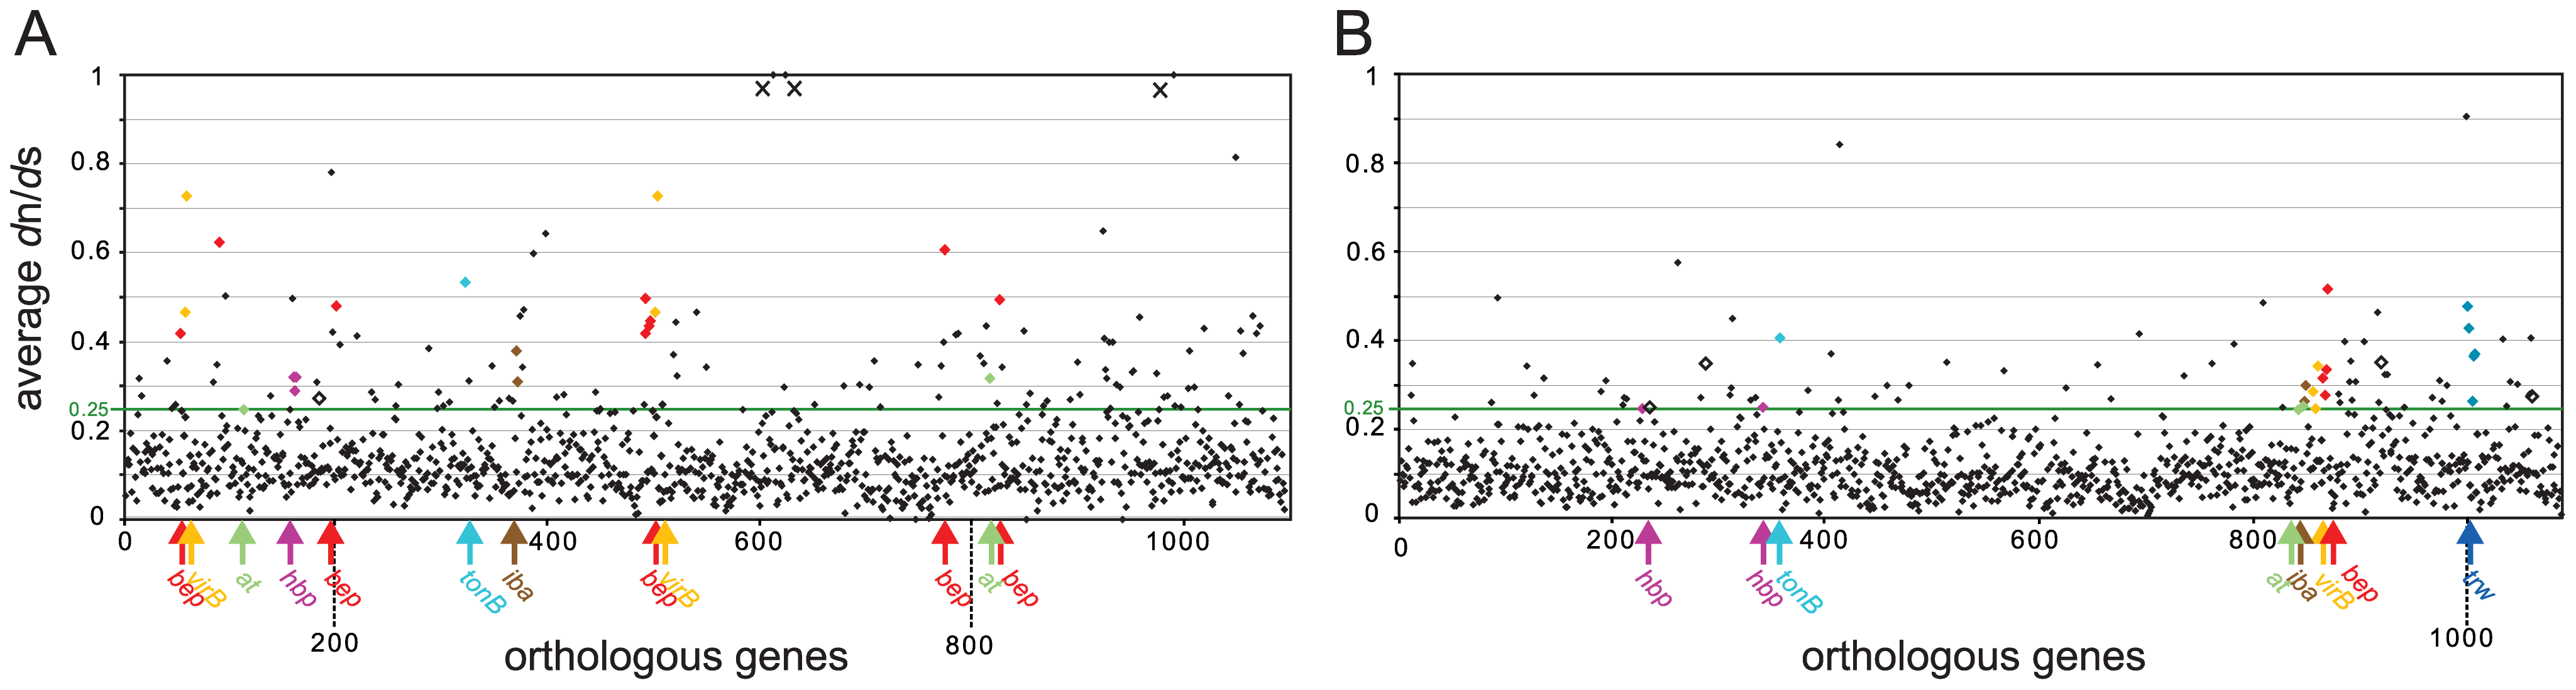 Gene-wide <i>d</i>n/<i>d</i>s analysis of the core genomes of the two radiating lineages.